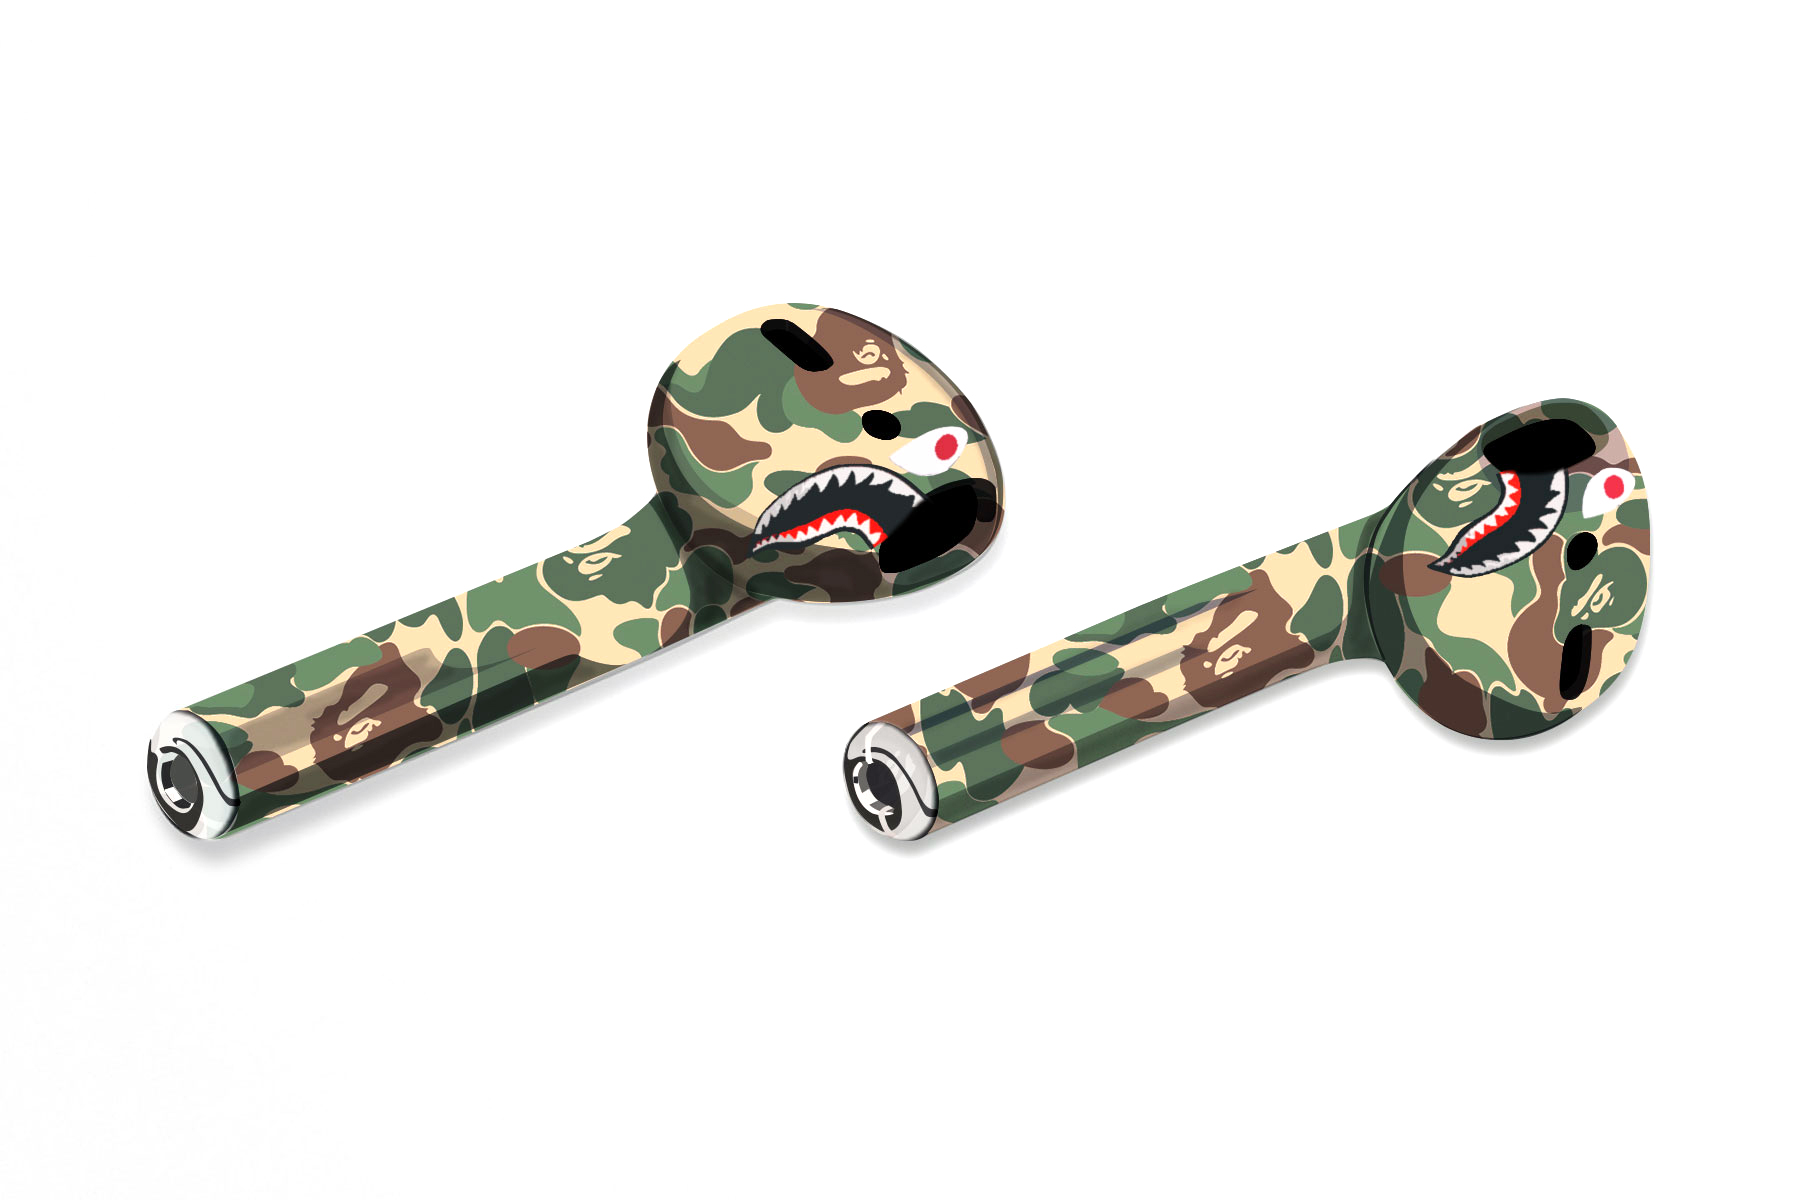 Apple Wireless AirPods Get the Streetwear Makeover Concepts BAPE A Bathing Ape OFF-WHITE Palace Skateboards Billionaire Boys Club Supreme headphones - 1764045